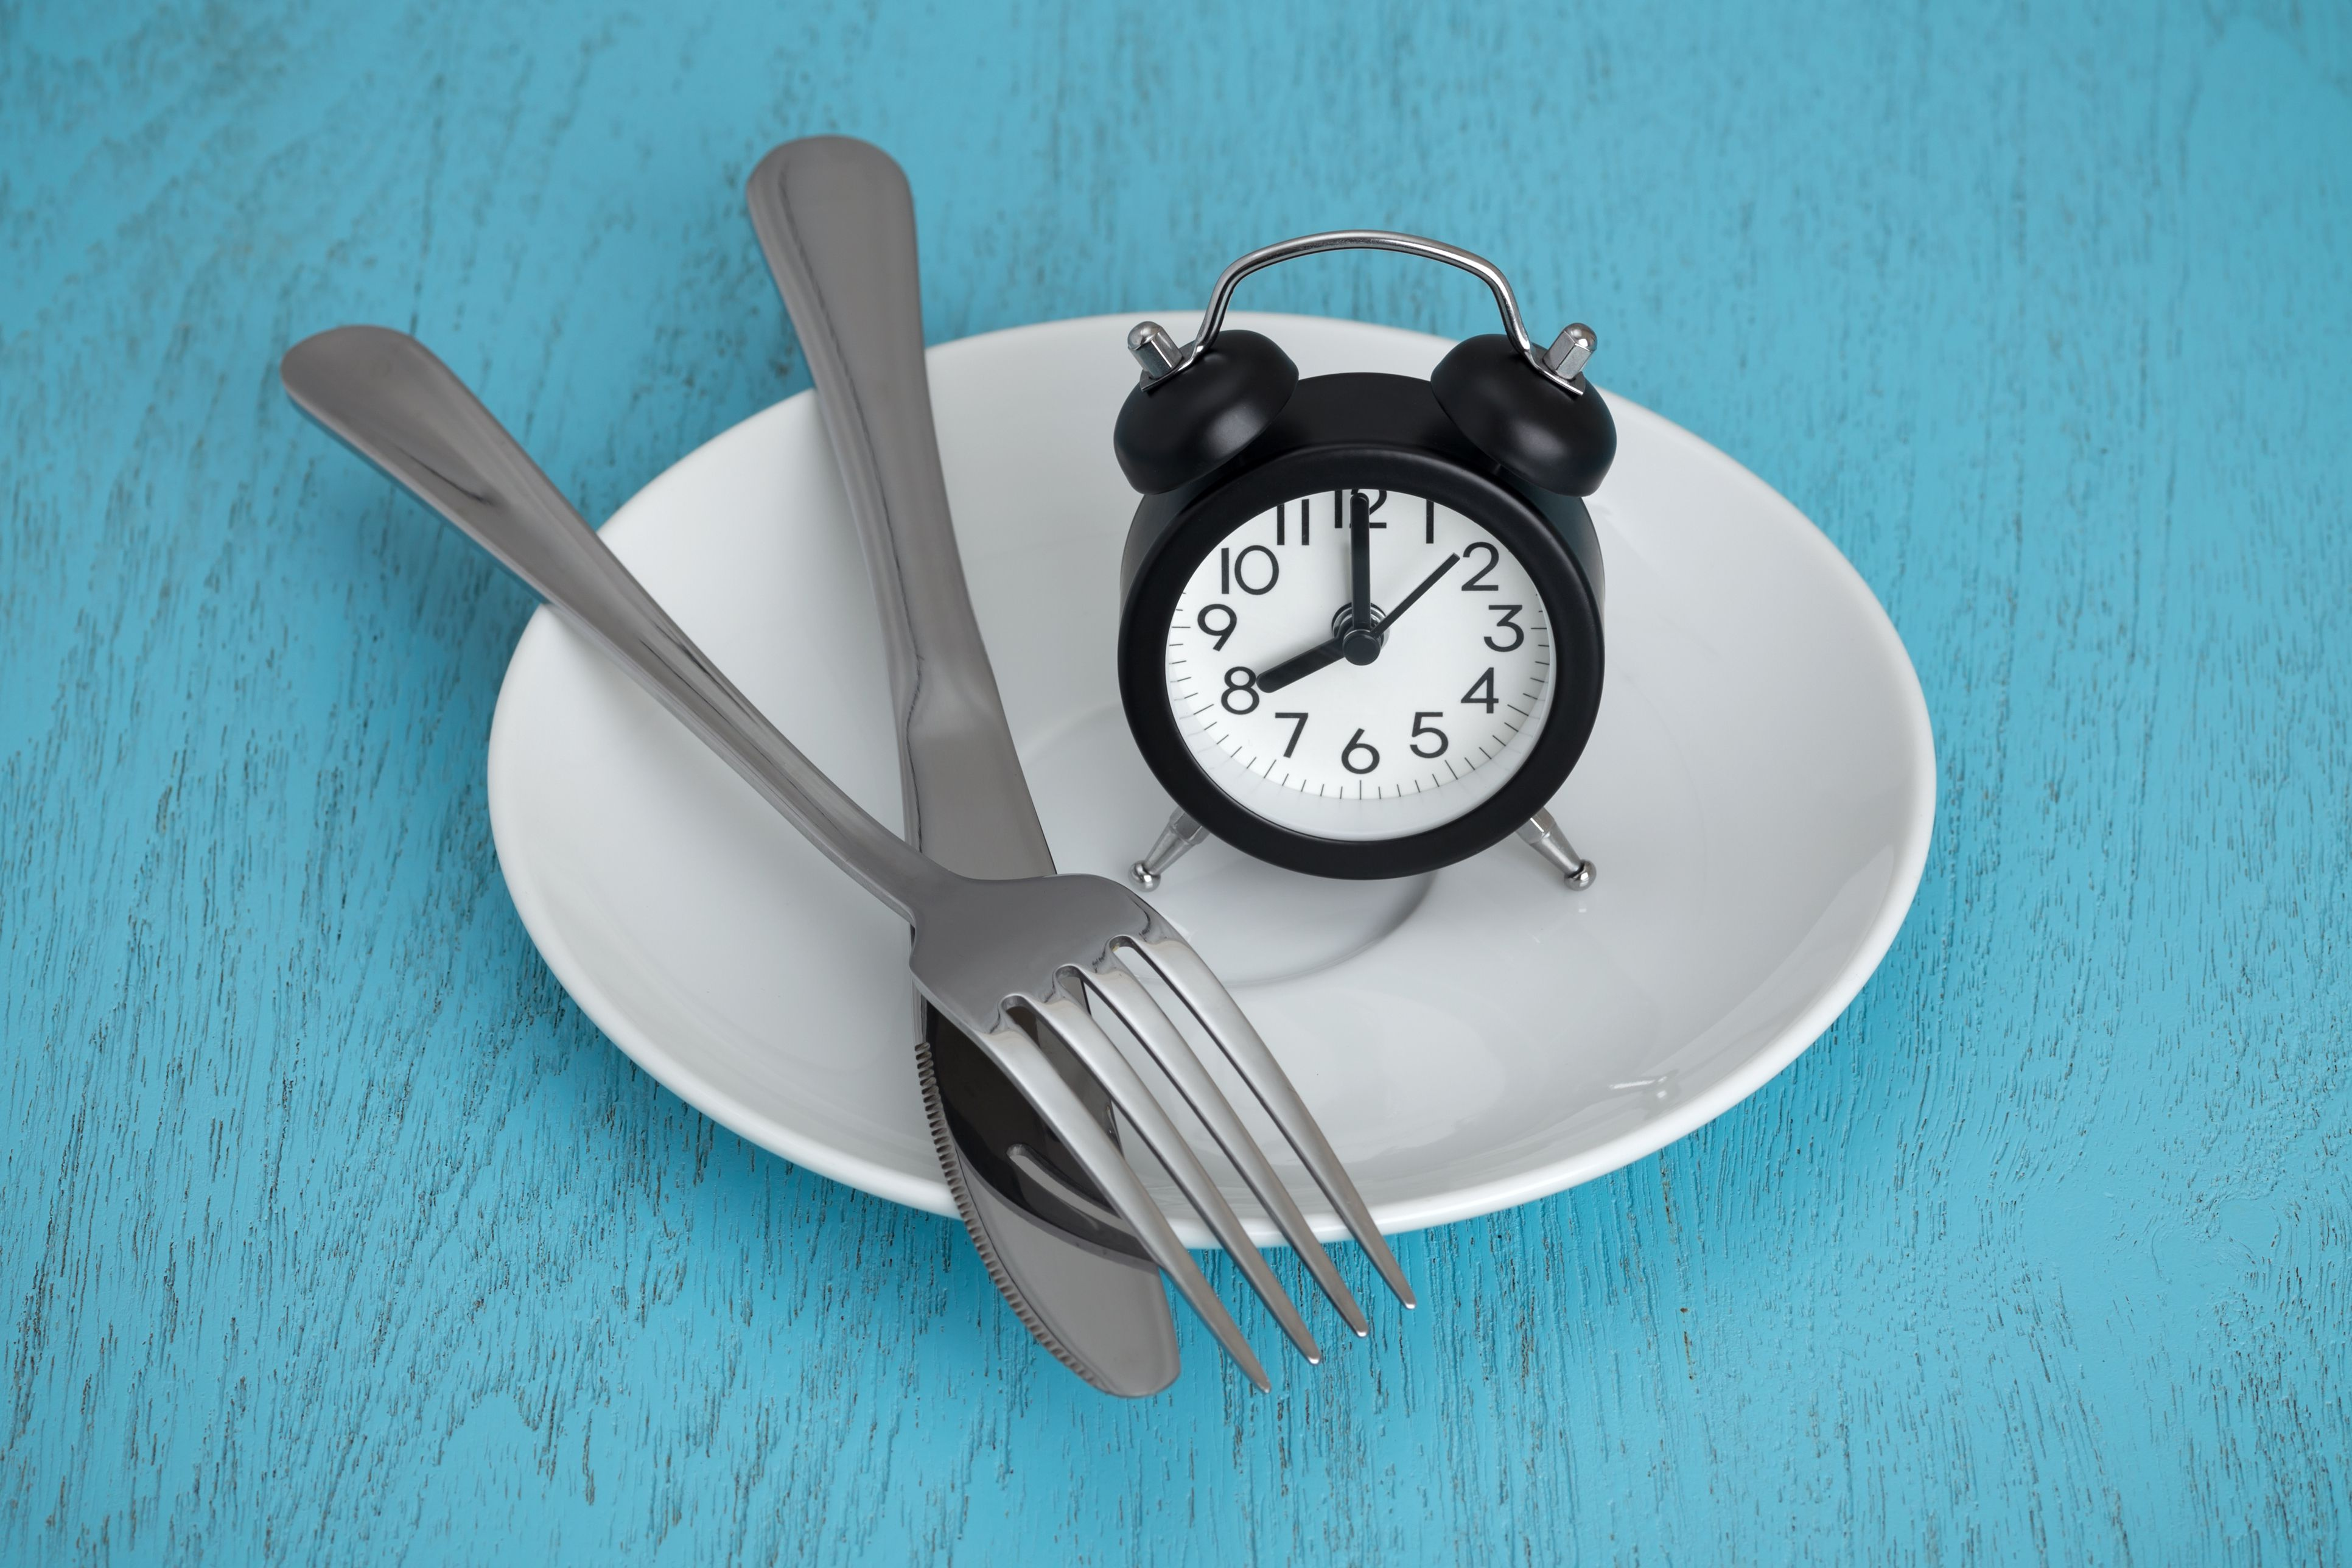 Can Intermittent Fasting Help Treat or Prevent Cancer?